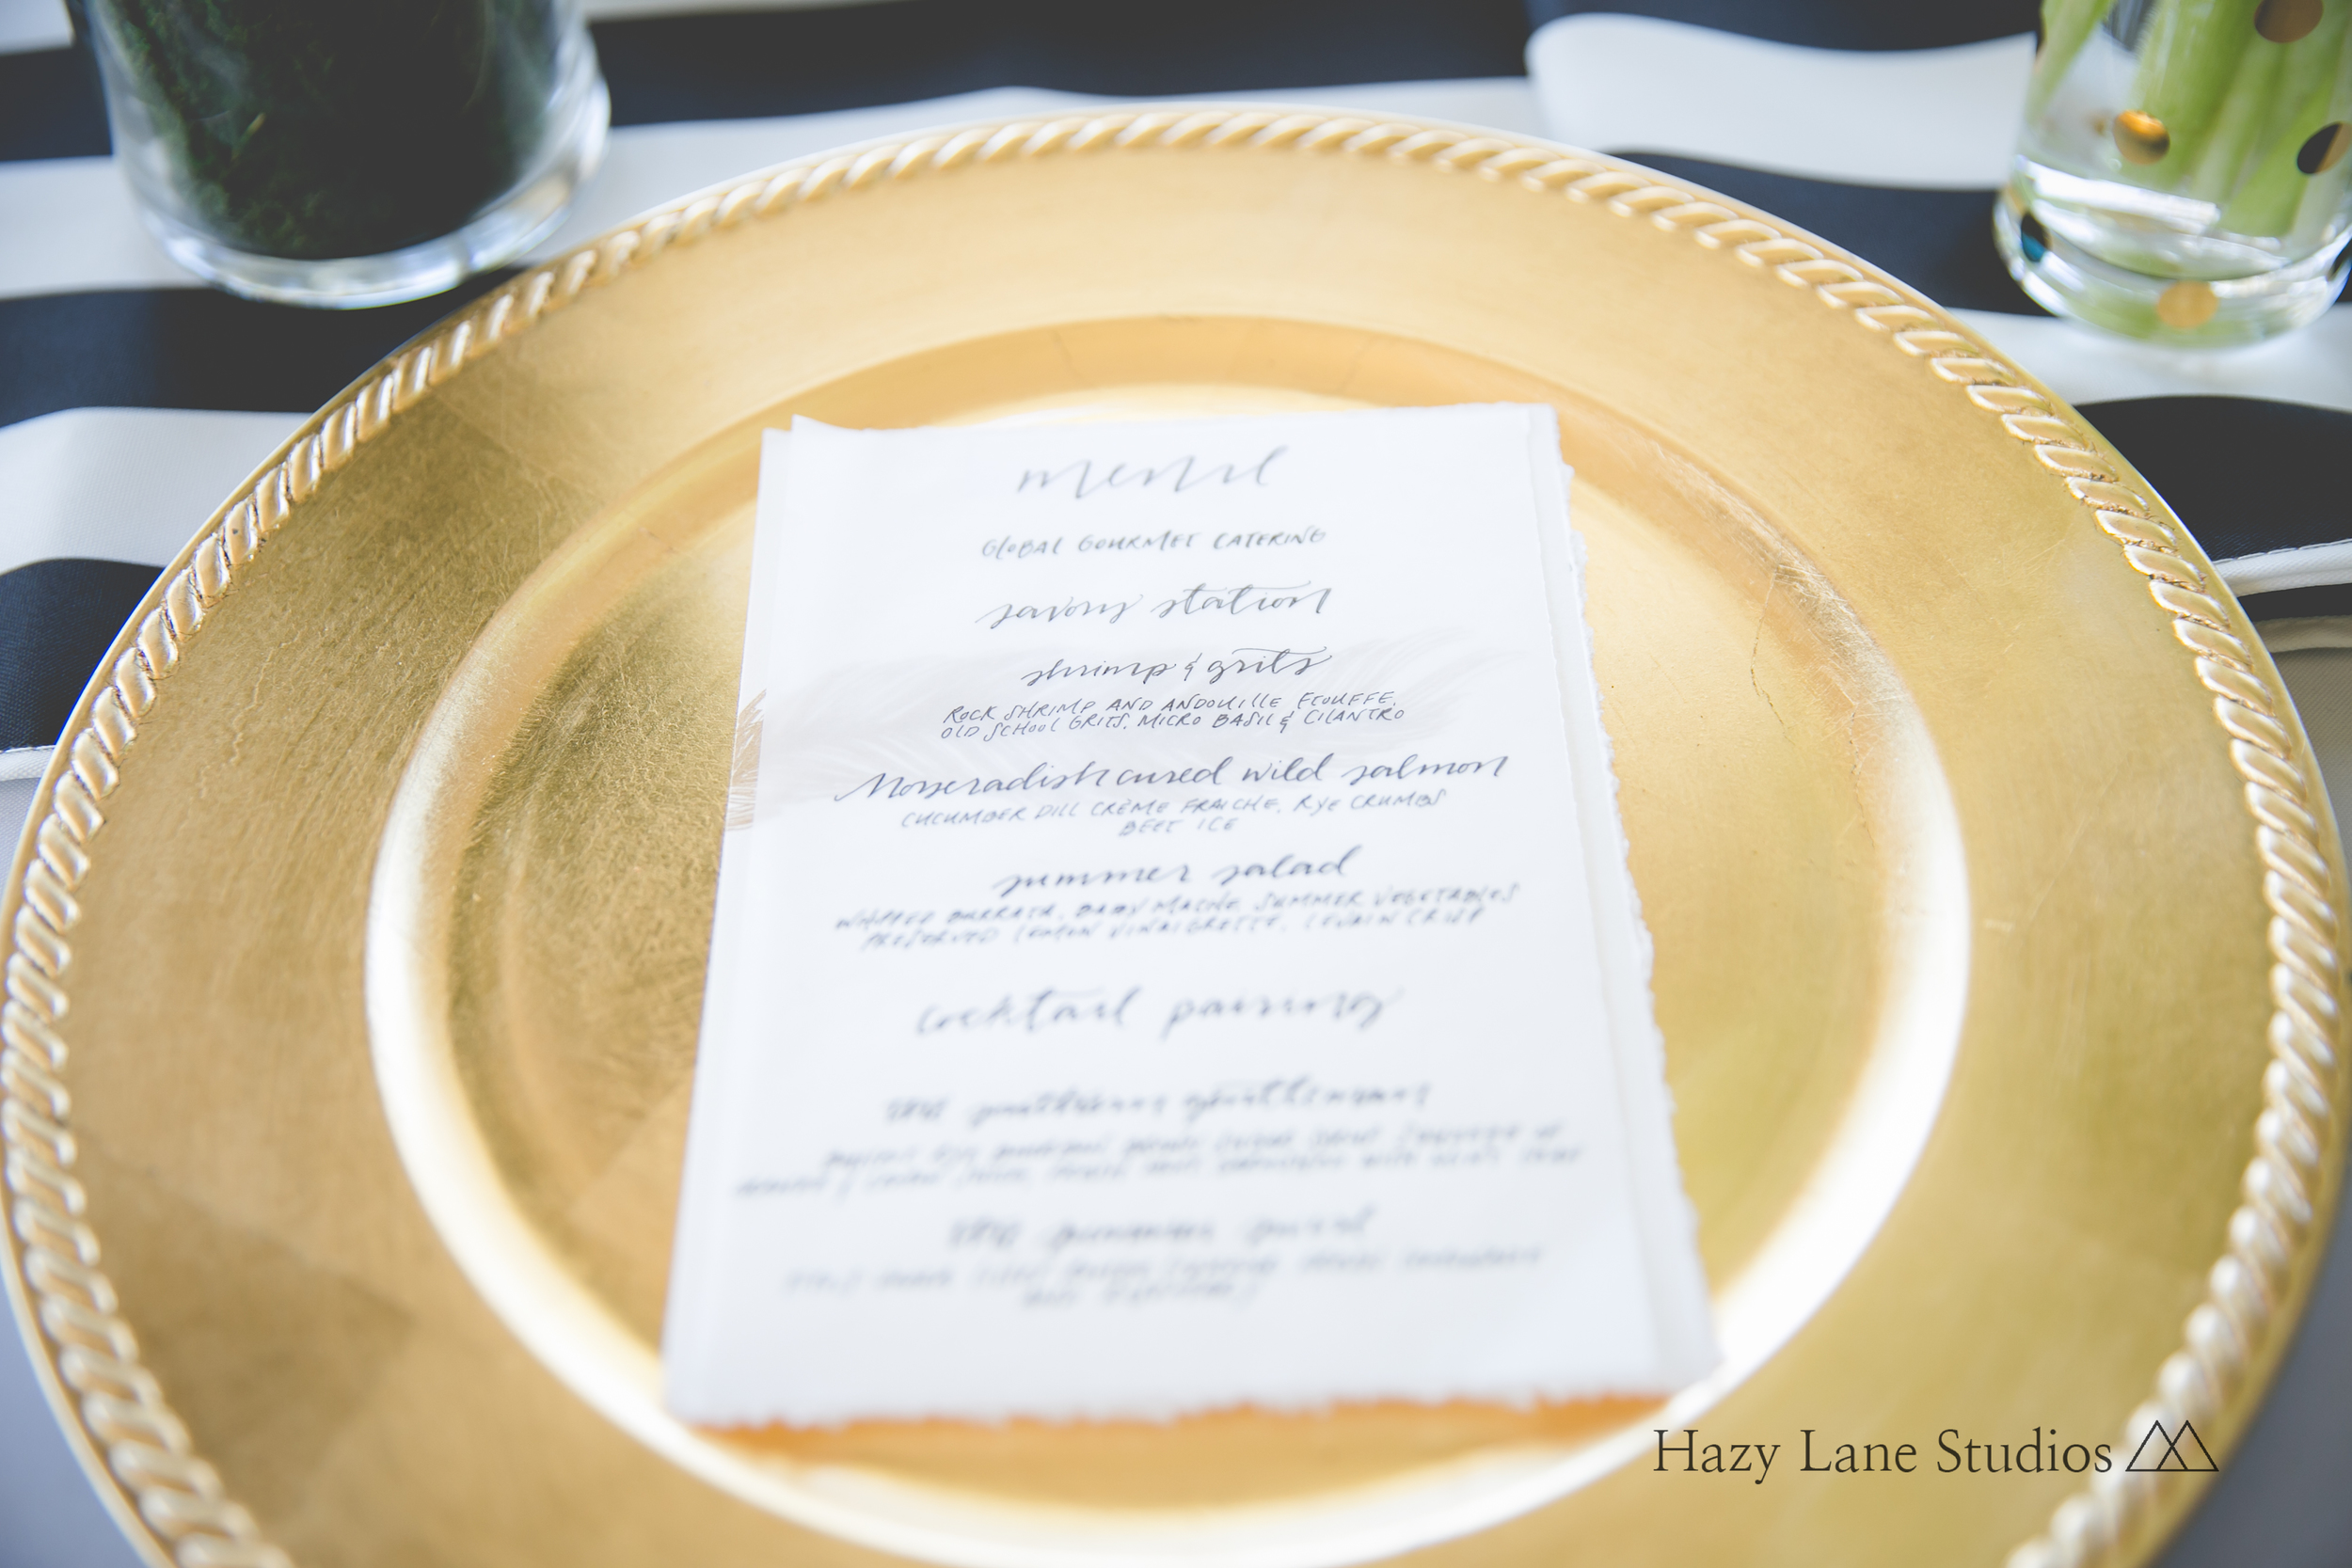 Hazy Lane Studios [Big Fake Wedding SF]-105.JPG